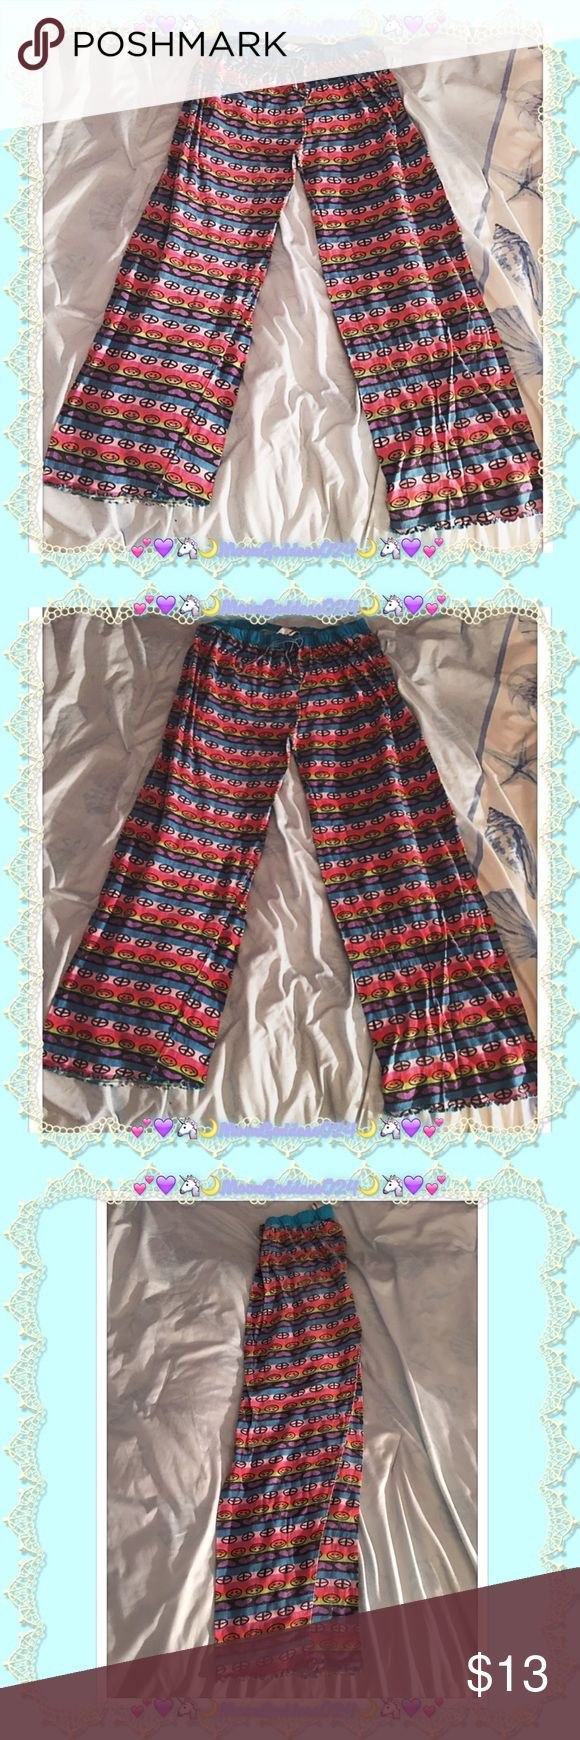 💕💚☮Peace, Love & Happiness Pajama Bottoms☮💚💕 💕💚☮American Basic ~ Peace * Love & Happiness Pajama Bottoms/Pants☮💚💕  💕💙Great deal!💖These👖petite pajama bottoms are in excellent pre-loved condition🌸VERY Slight fading but still lots of life left & SO cute for lounging around your humble abode👖🏡😻💐Super fun & colorful lightweight material with blue ruffled lining on bottom🤗Please View photos for best view of condition☺️💙💕   💚🌸Adorned with🙂Smiley Faces🙂, 💜Hearts💜 & ☮Peace…